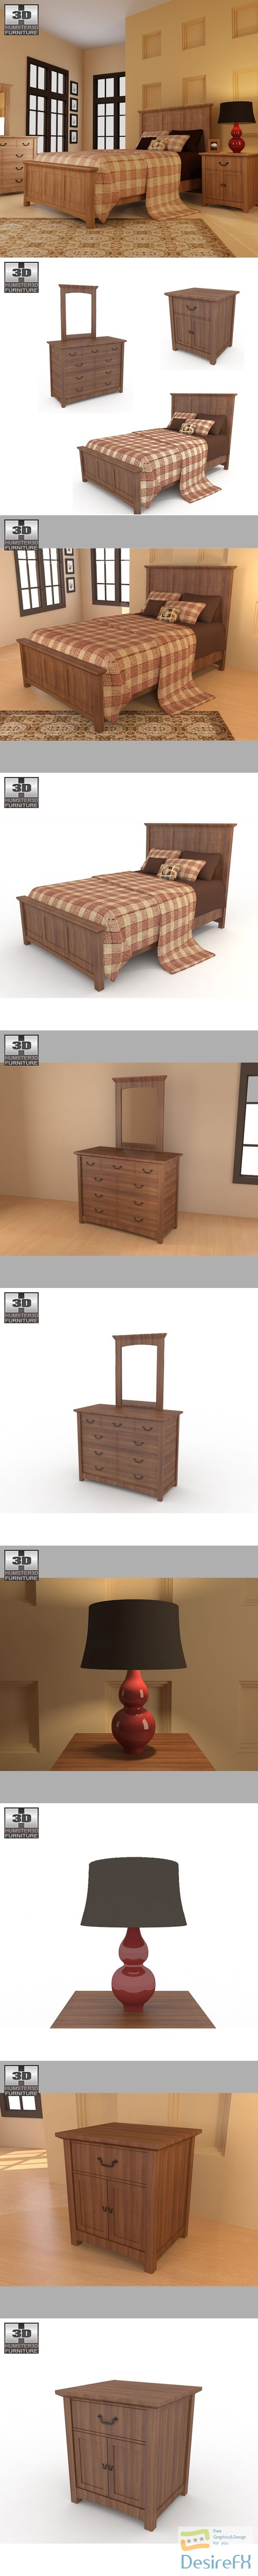 Bedroom Furniture 23 Set 3D Model